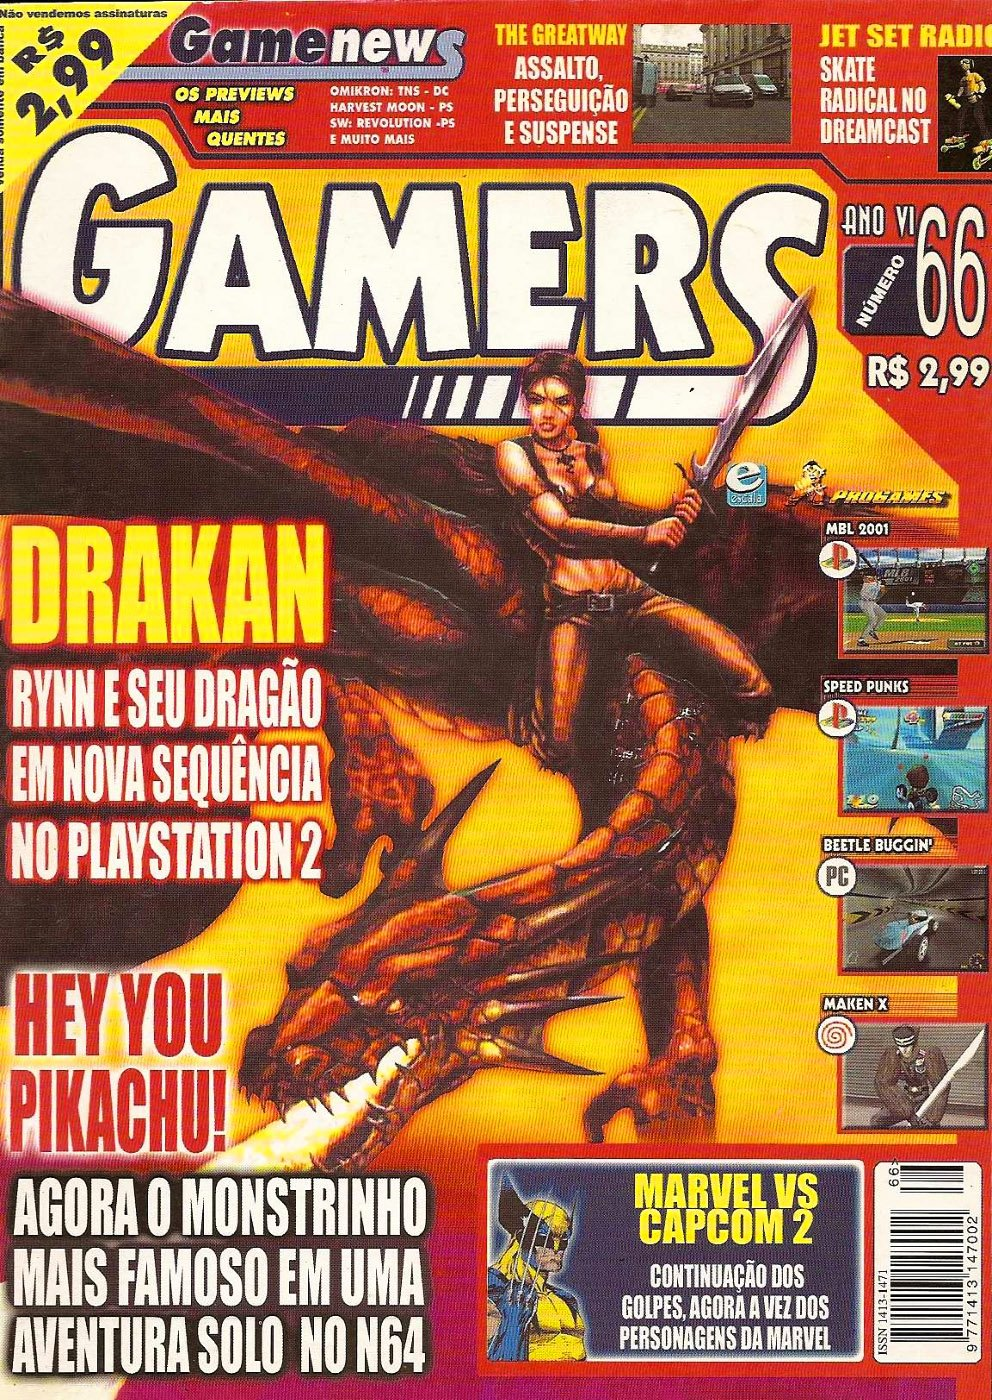 Gamers Issue 66 (2000)